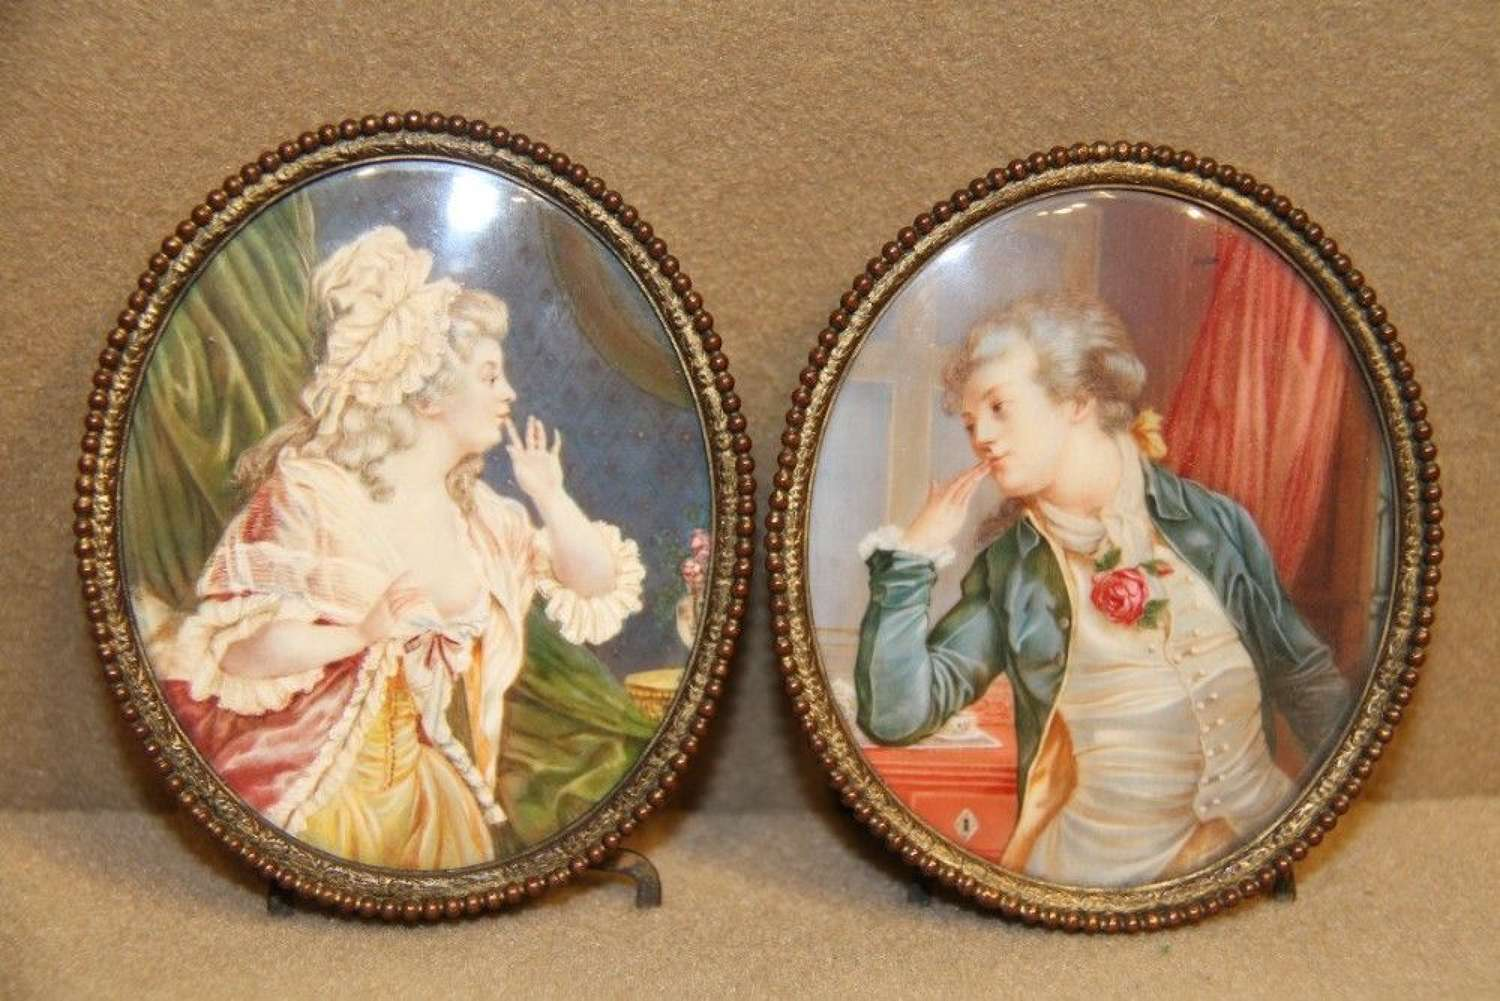 Pair Of Miniatures Painted On IVory